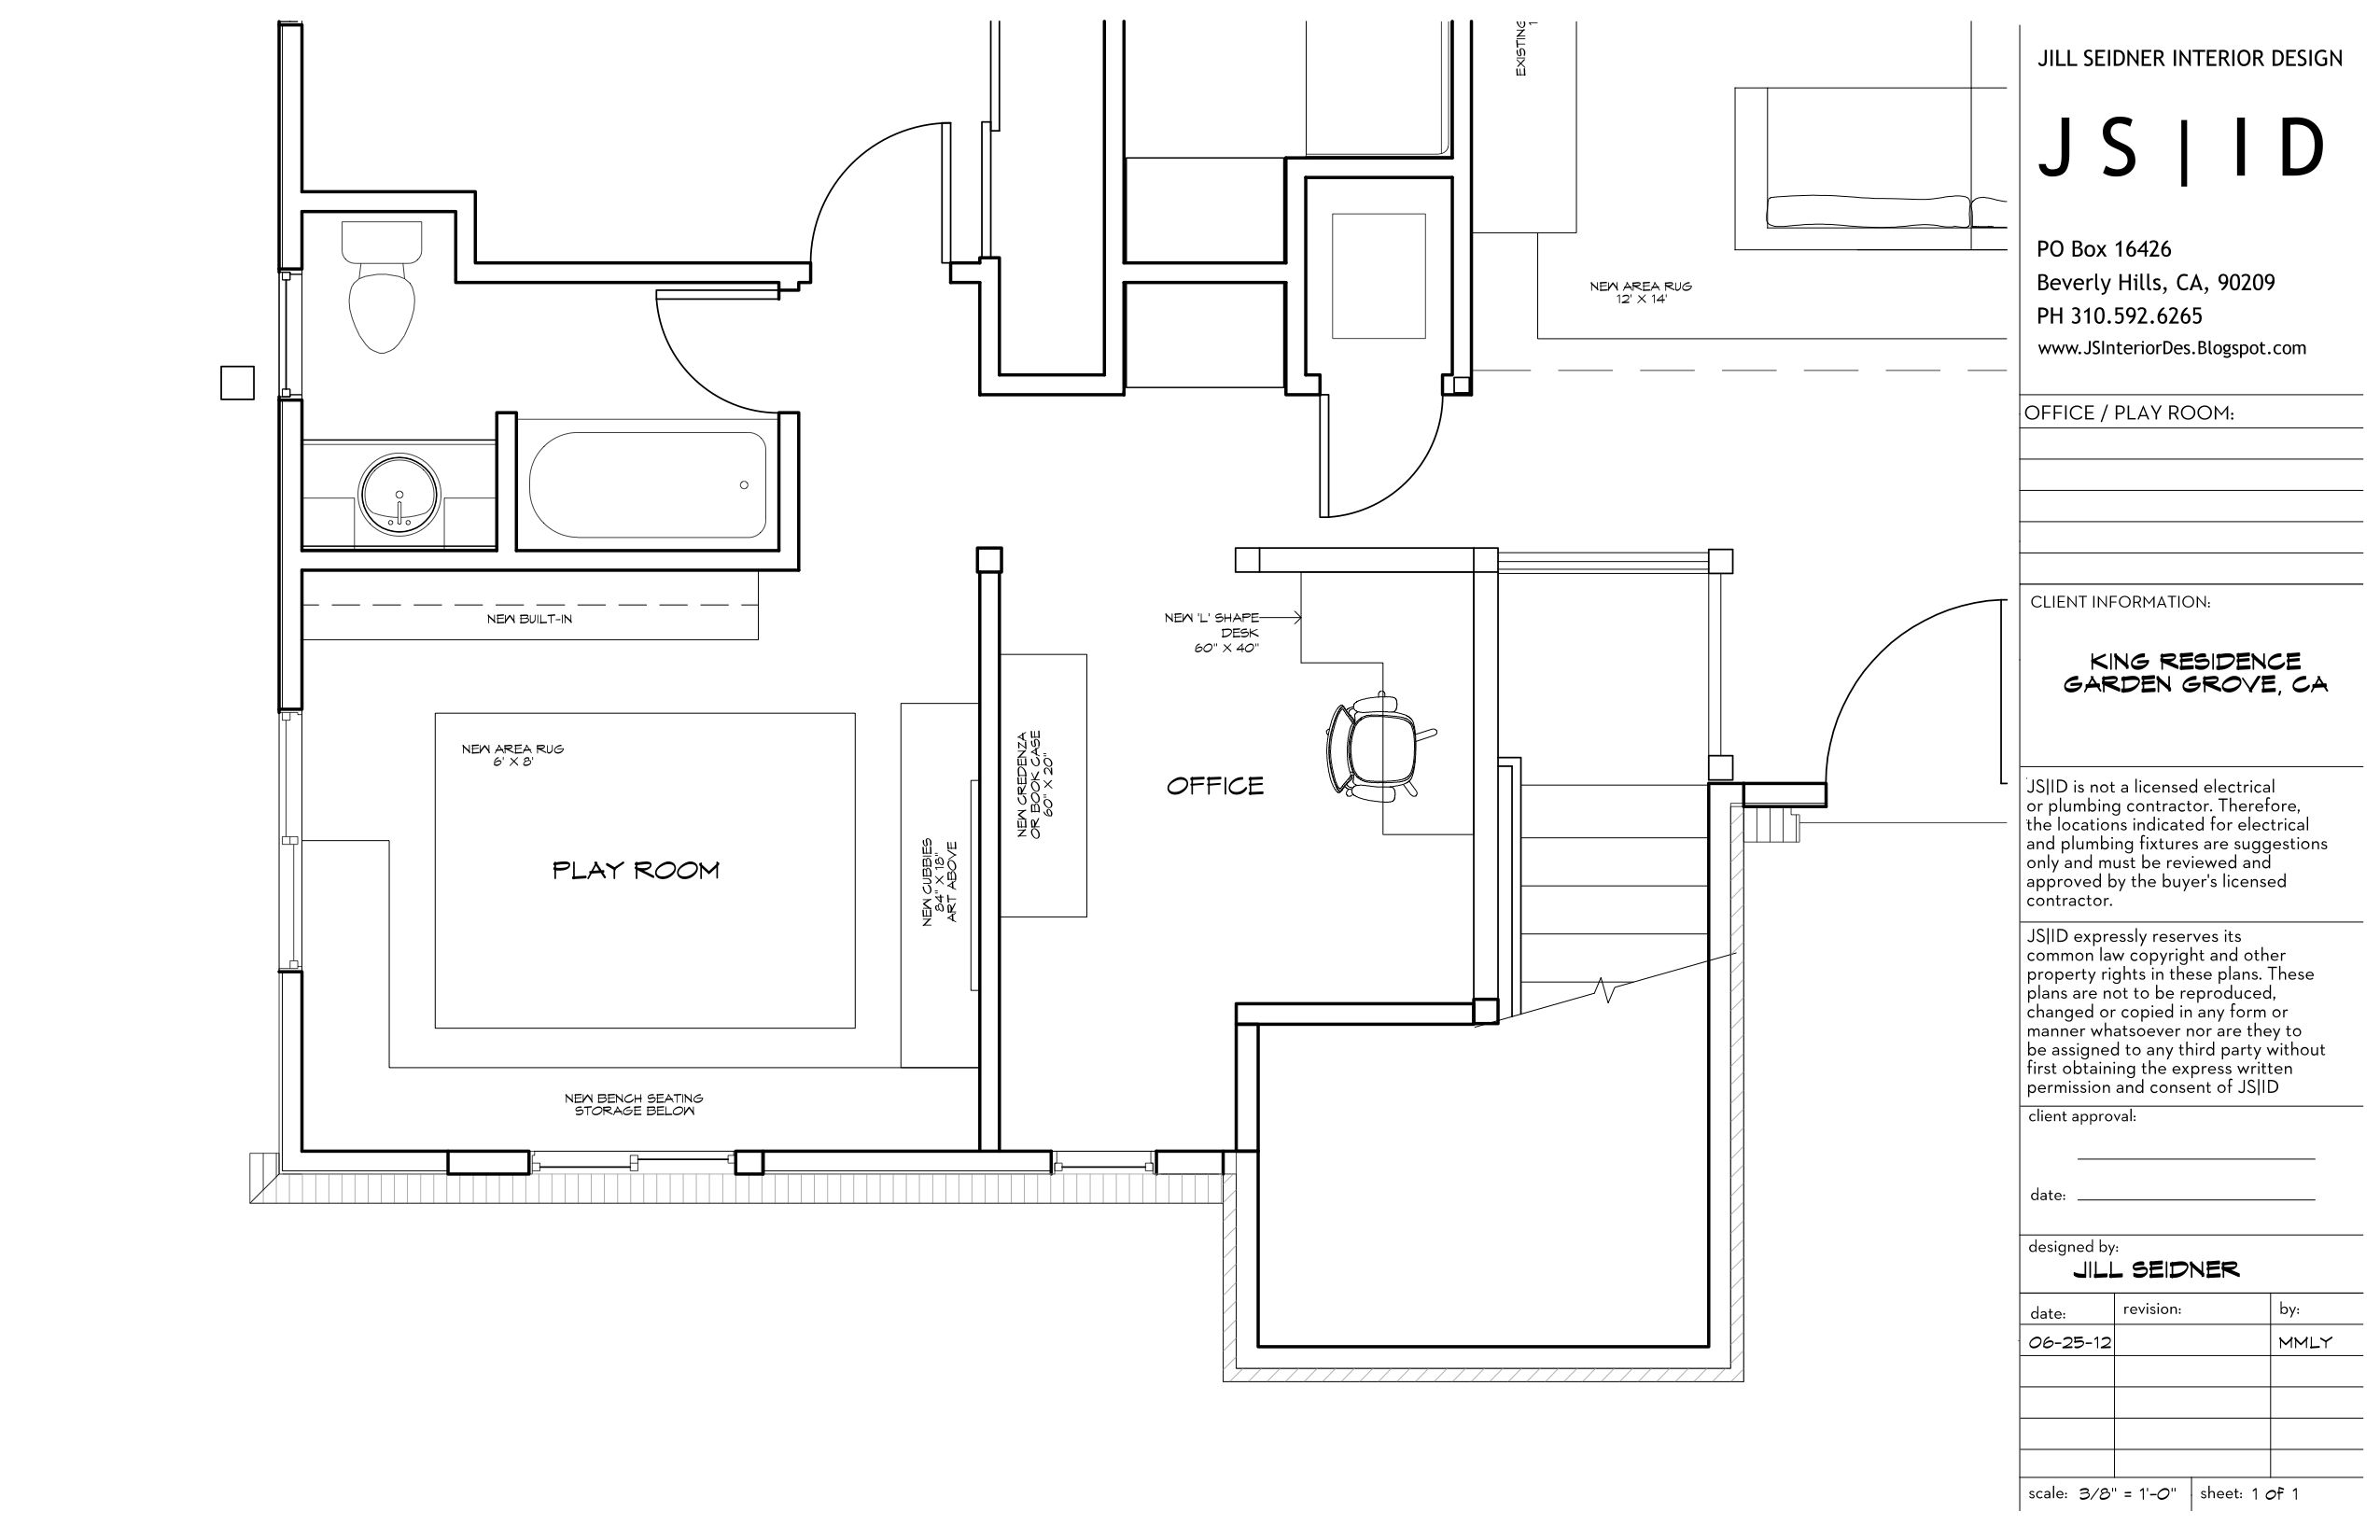 Garden Grove CA Residence Office Playroom Furniture Floor Plan Layout